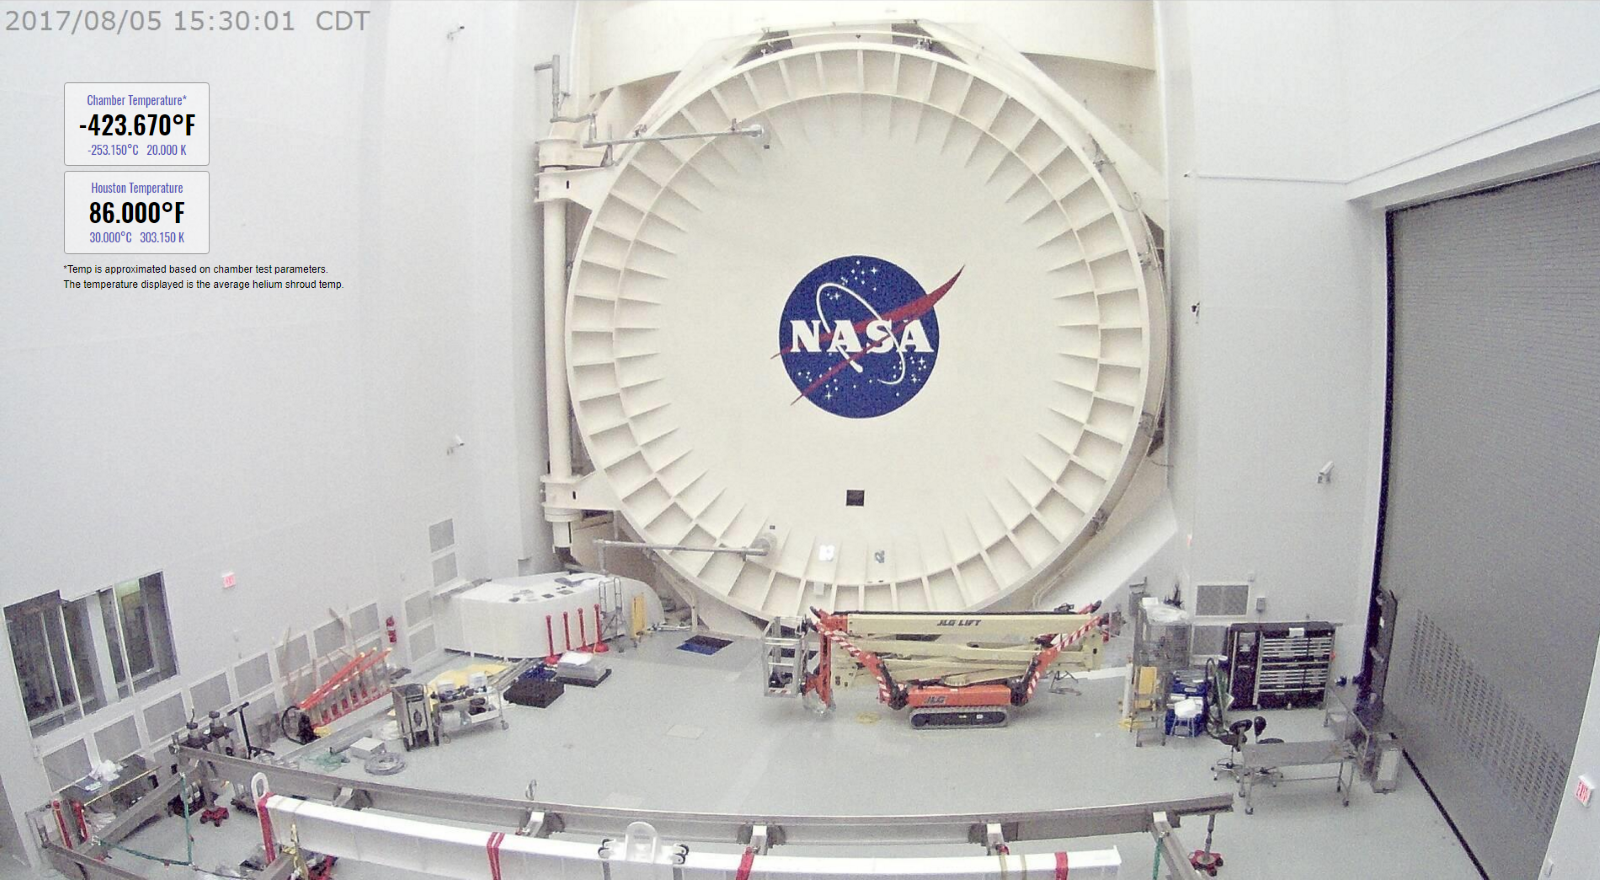 The James Webb Space Telescope is chilling in Chamber A